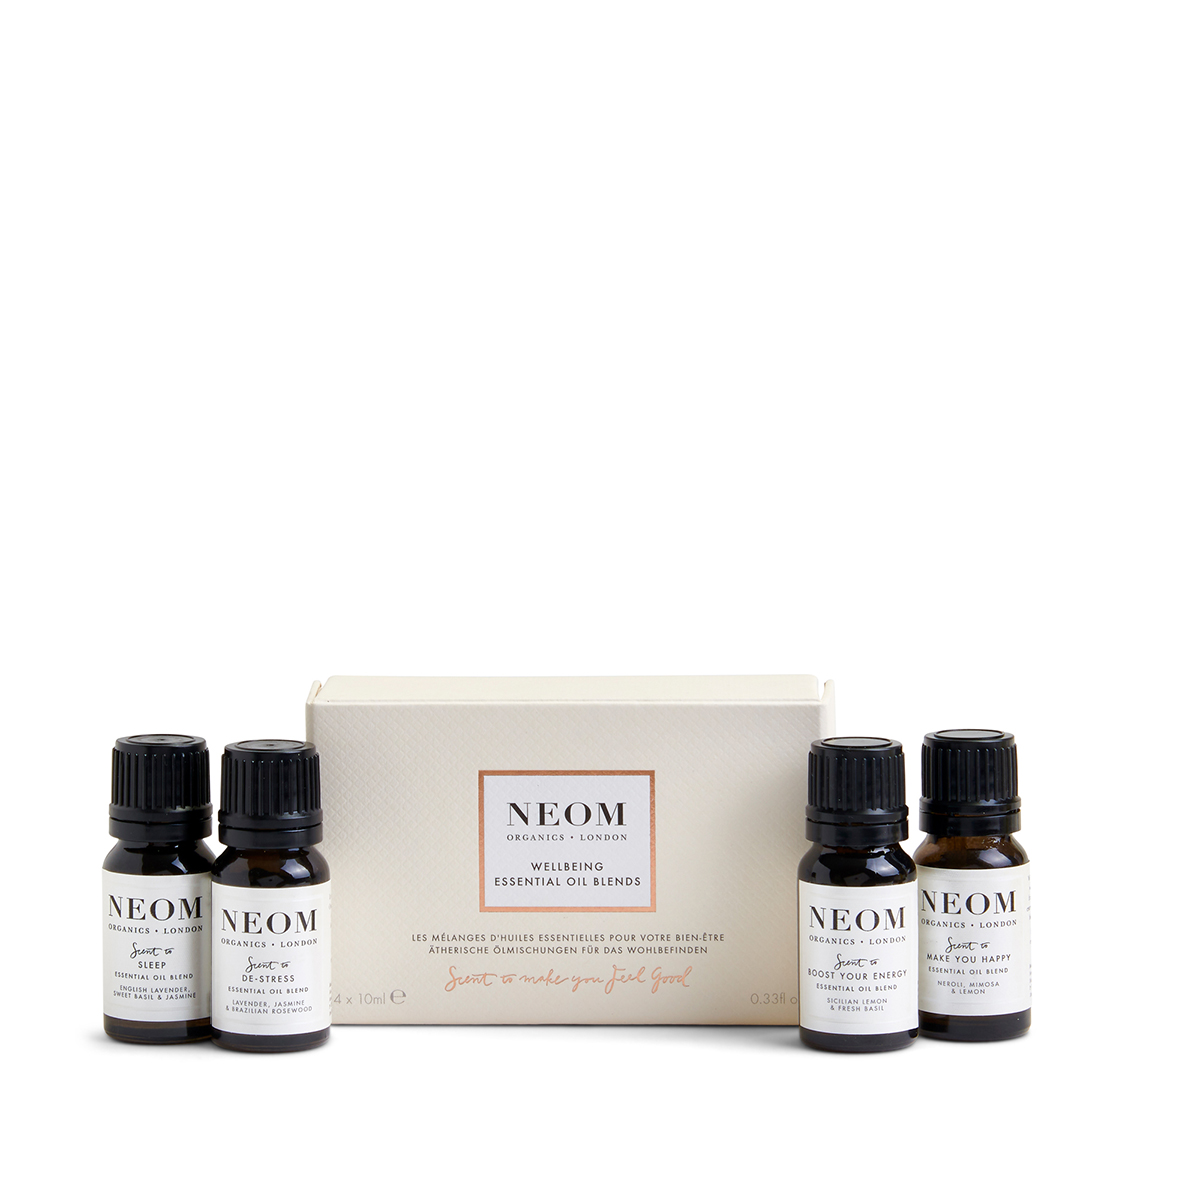 Wellbeing Essential Oil Blends from Neom Organics, home fragrance from Beautiful Brands